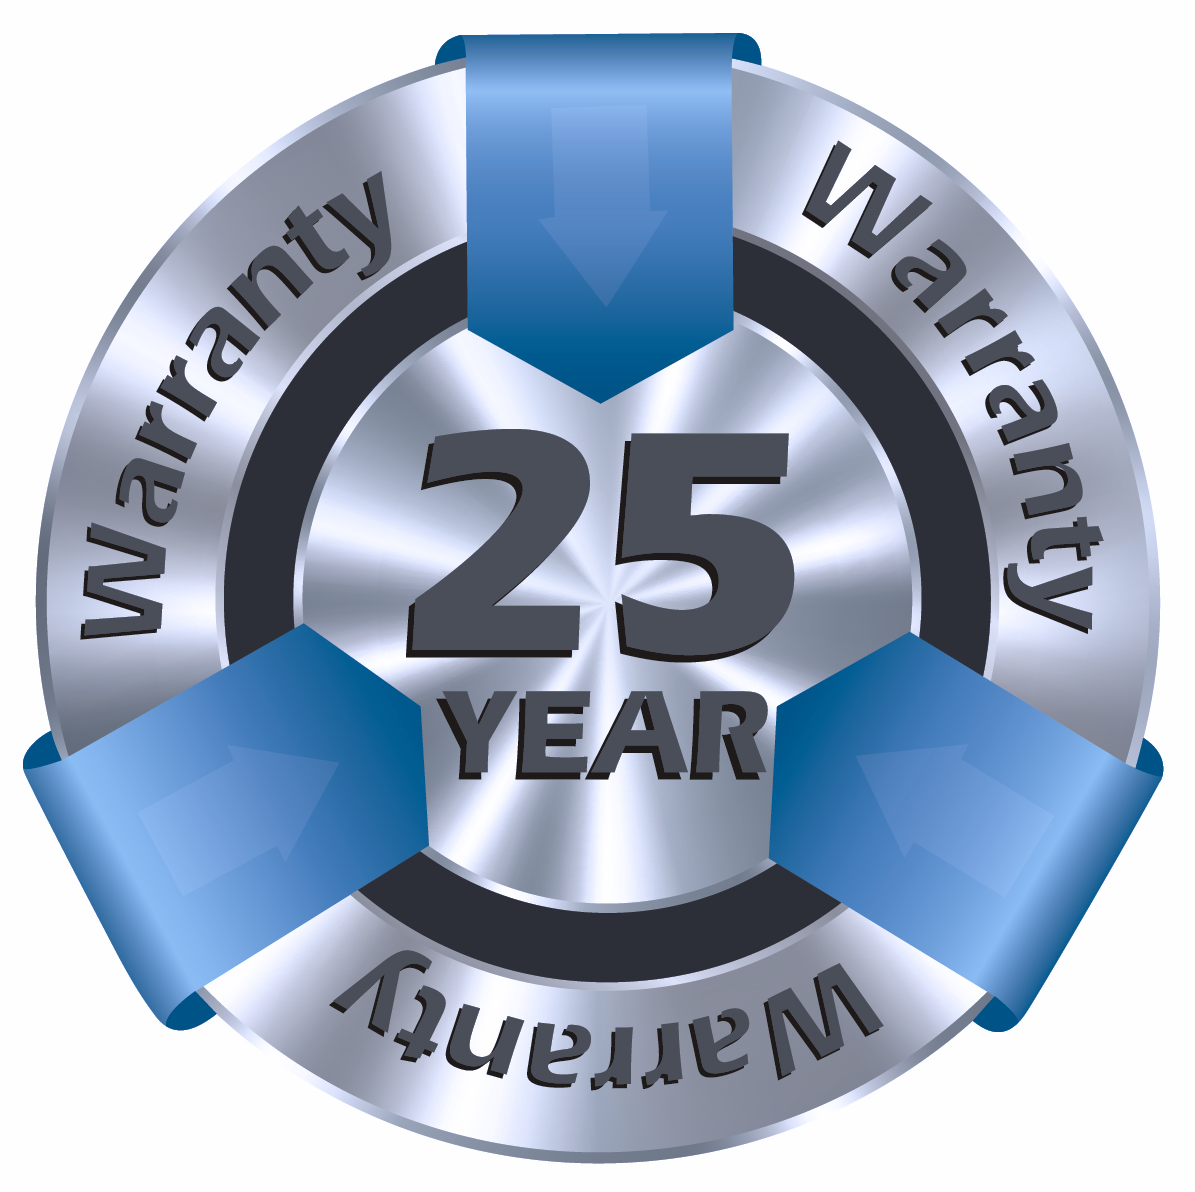 Industry Leading 25 Year No Hassle Warranty. Get the Right Gear! Get the Right Warranty!